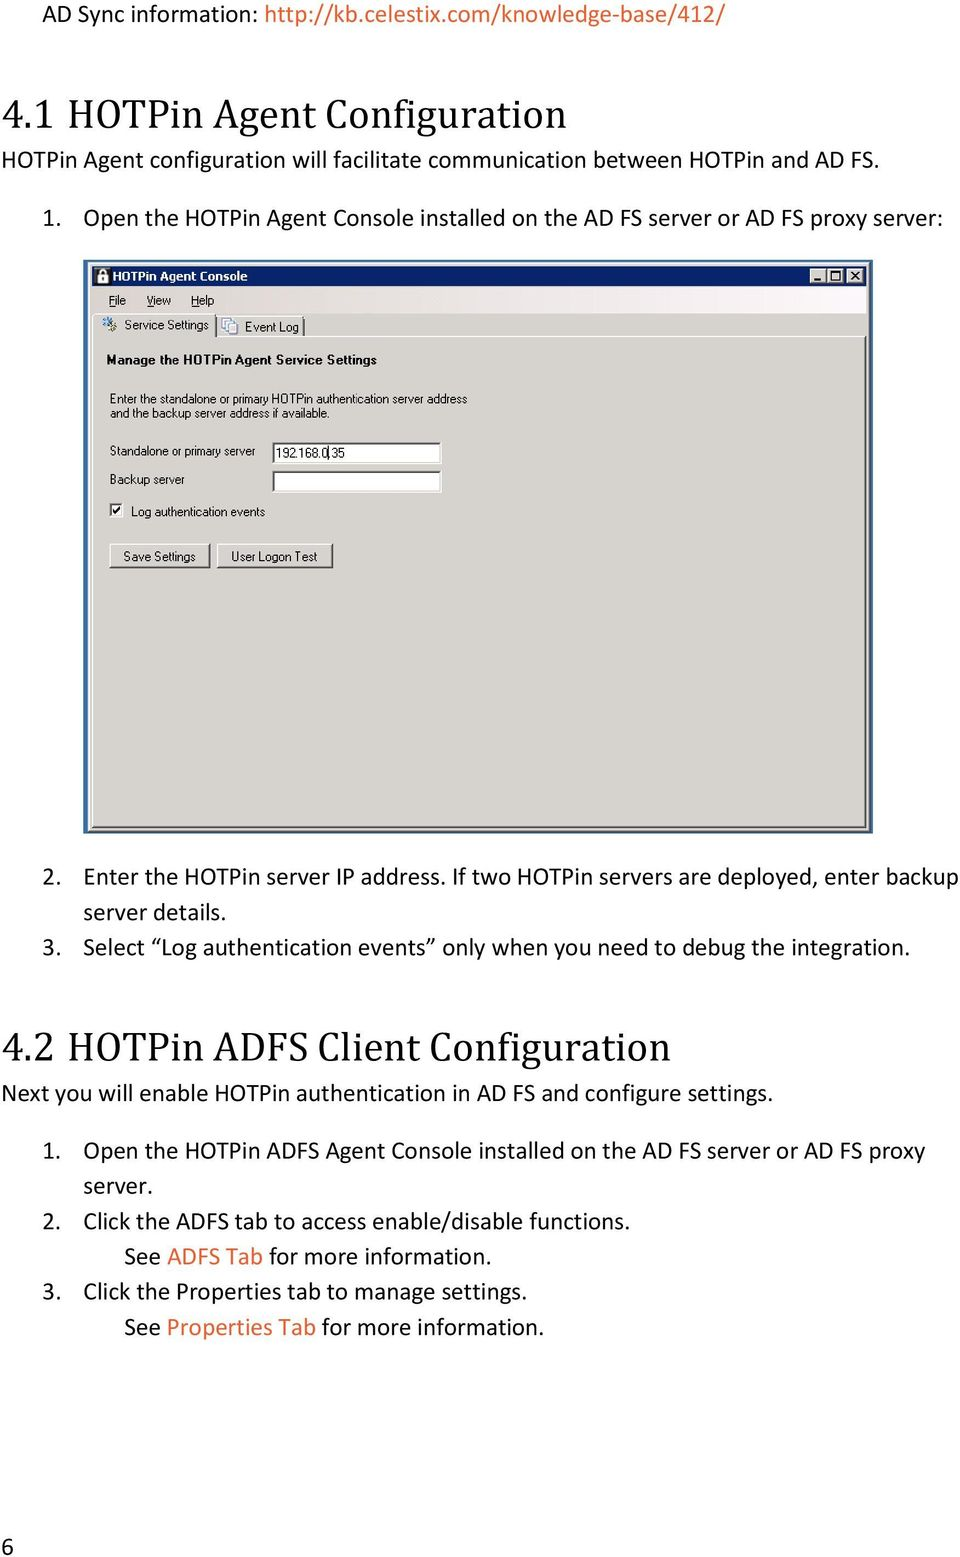 Select Log authentication events only when you need to debug the integration. 4.2 HOTPin ADFS Client Configuration Next you will enable HOTPin authentication in AD FS and configure settings. 1.